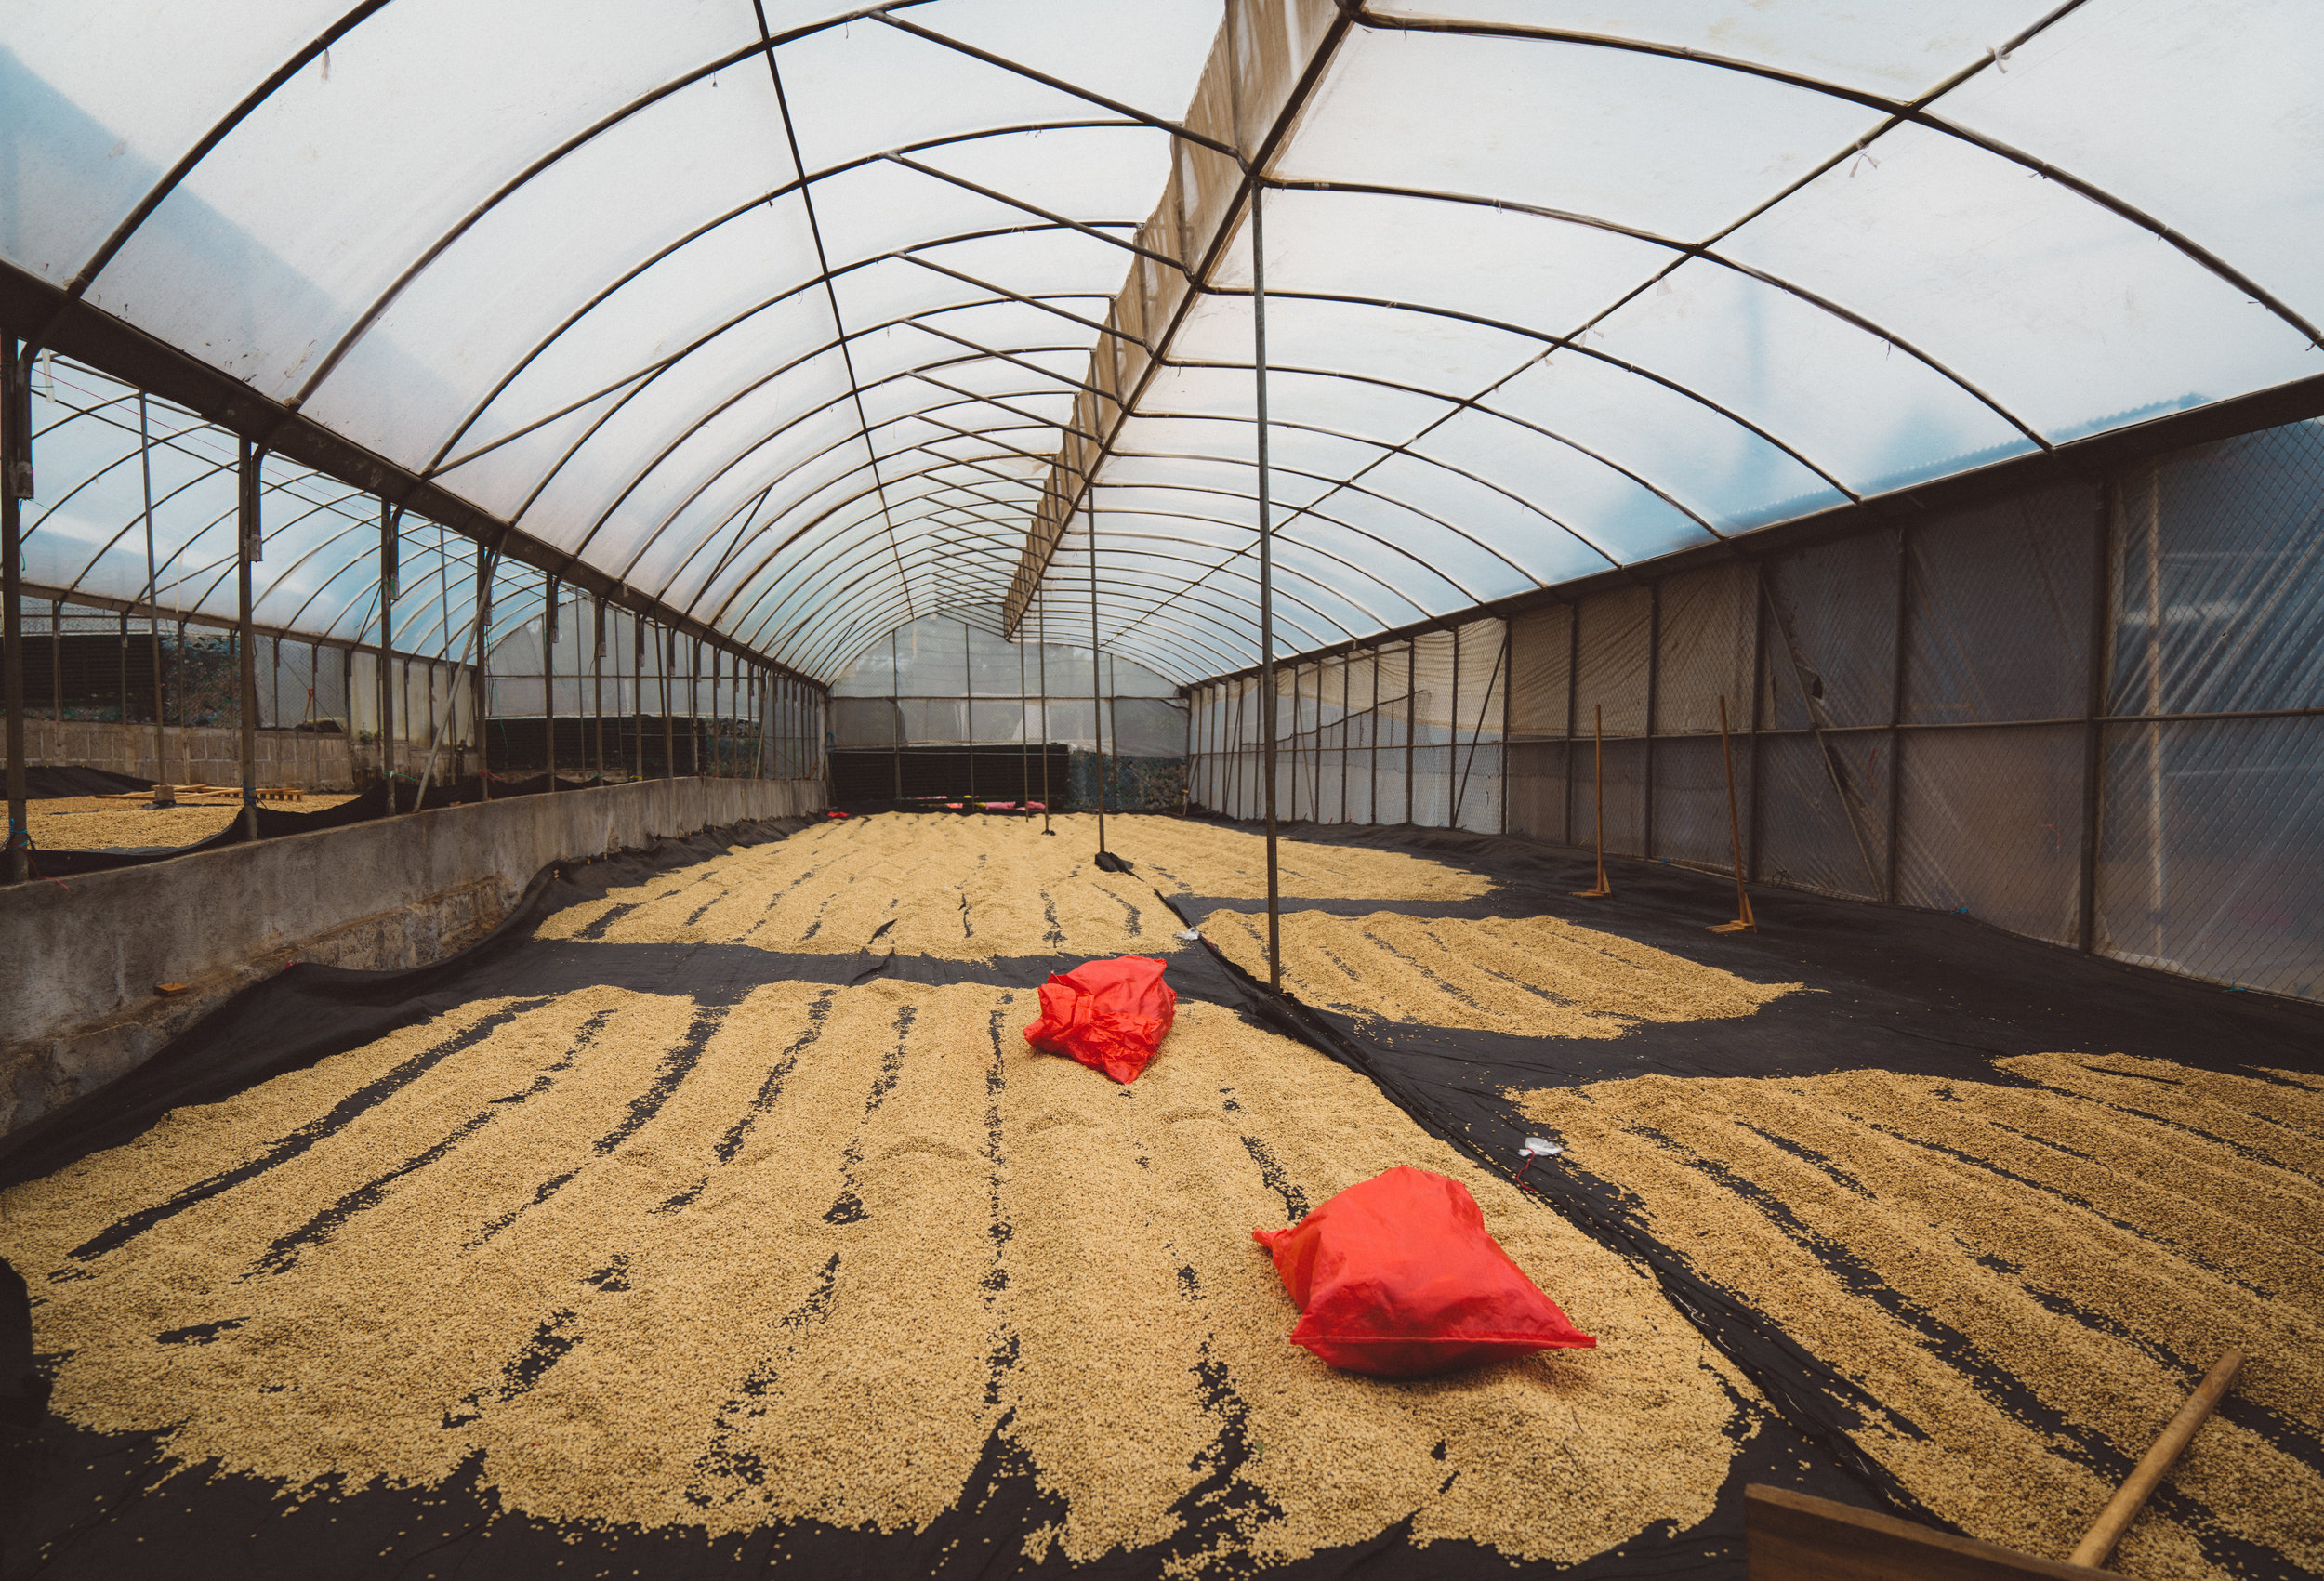 The drying non-organic beans.